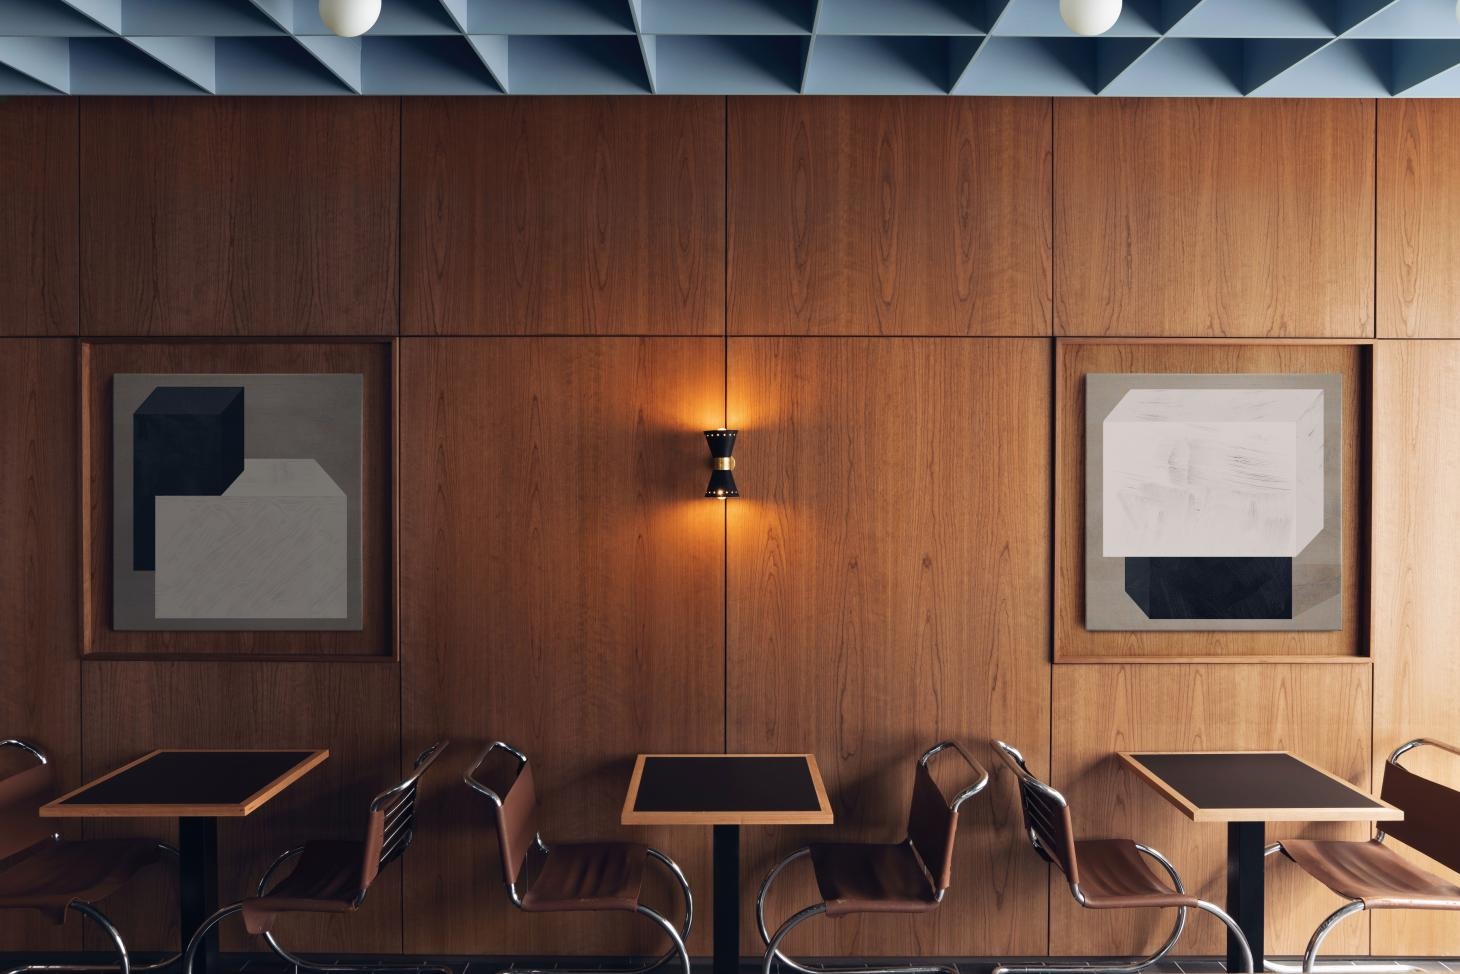 dark cherry wood paneling and modernist furniture in London space designed by Child Studio for Maido Sushi